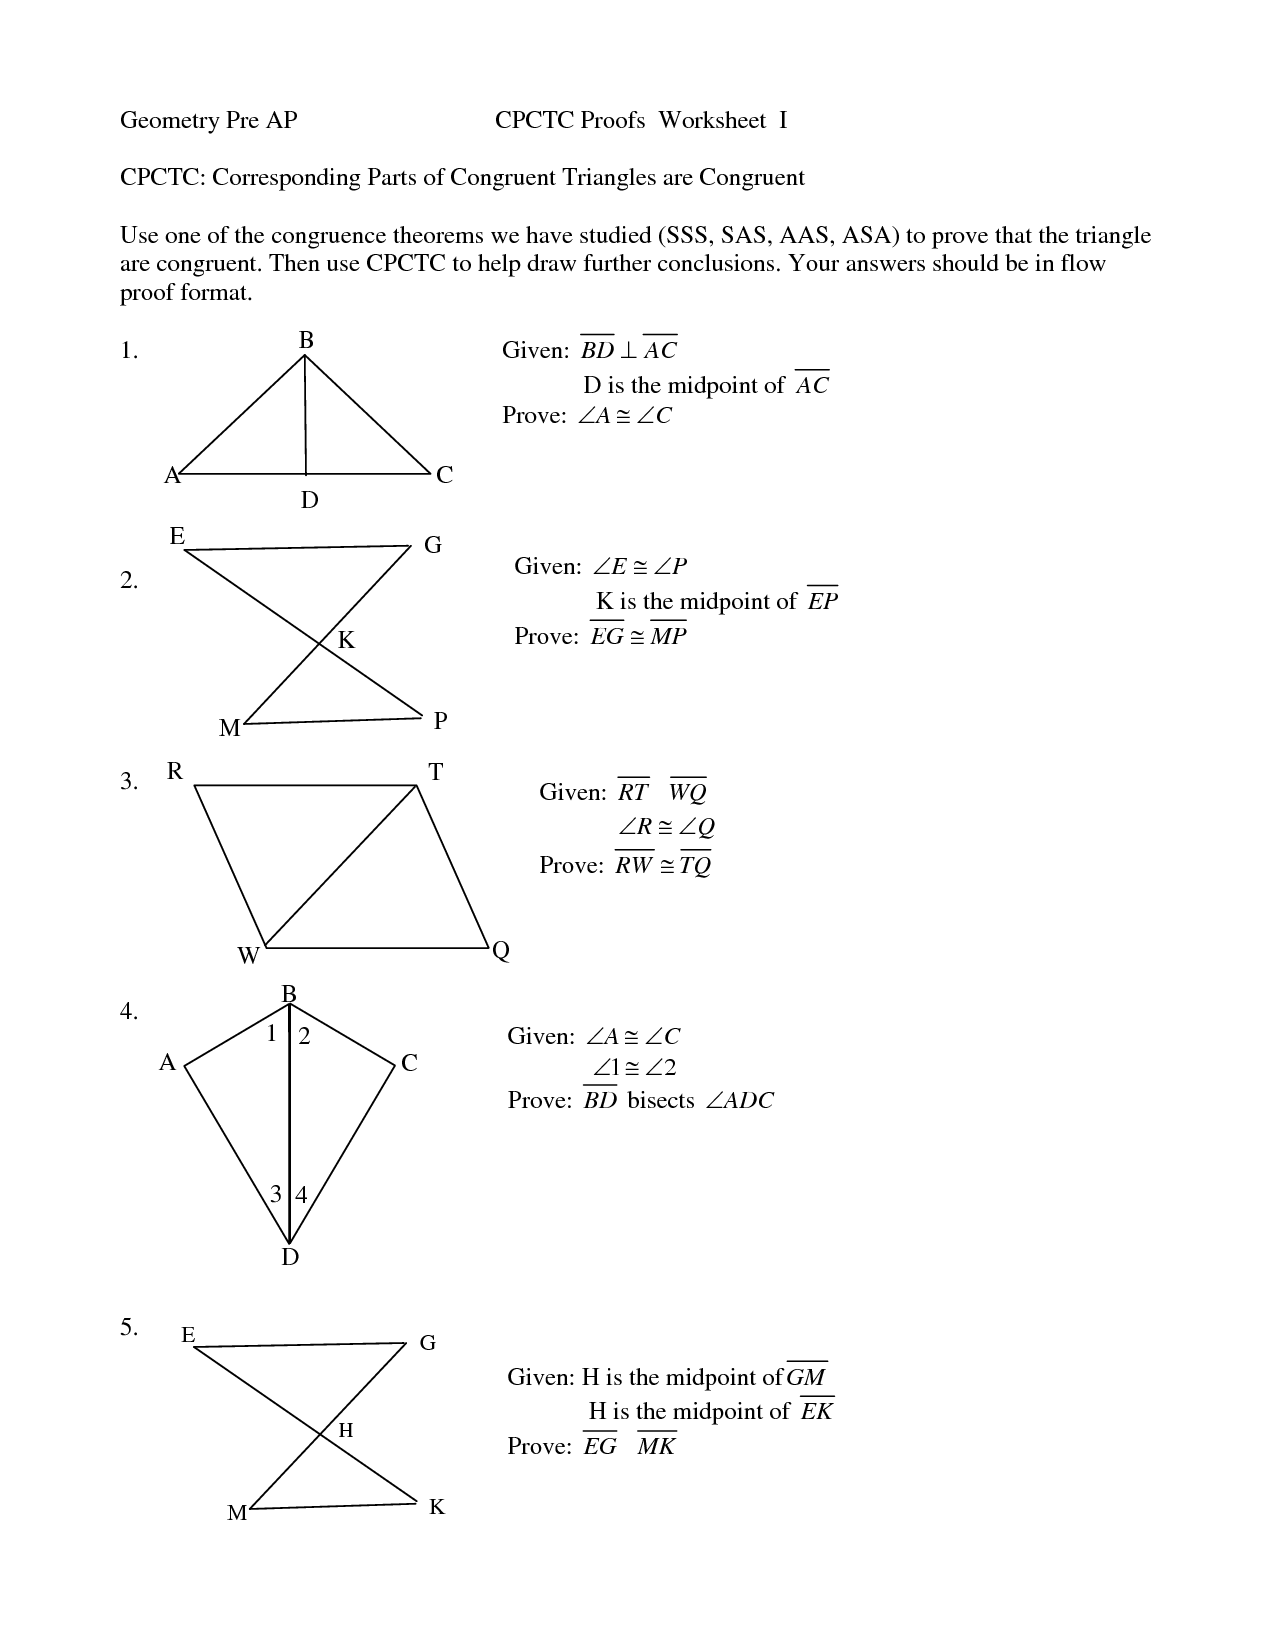 Triangle Congruence Proofs Worksheet: triangle congruence worksheet   Google Search   Fabric   Pinterest    ,